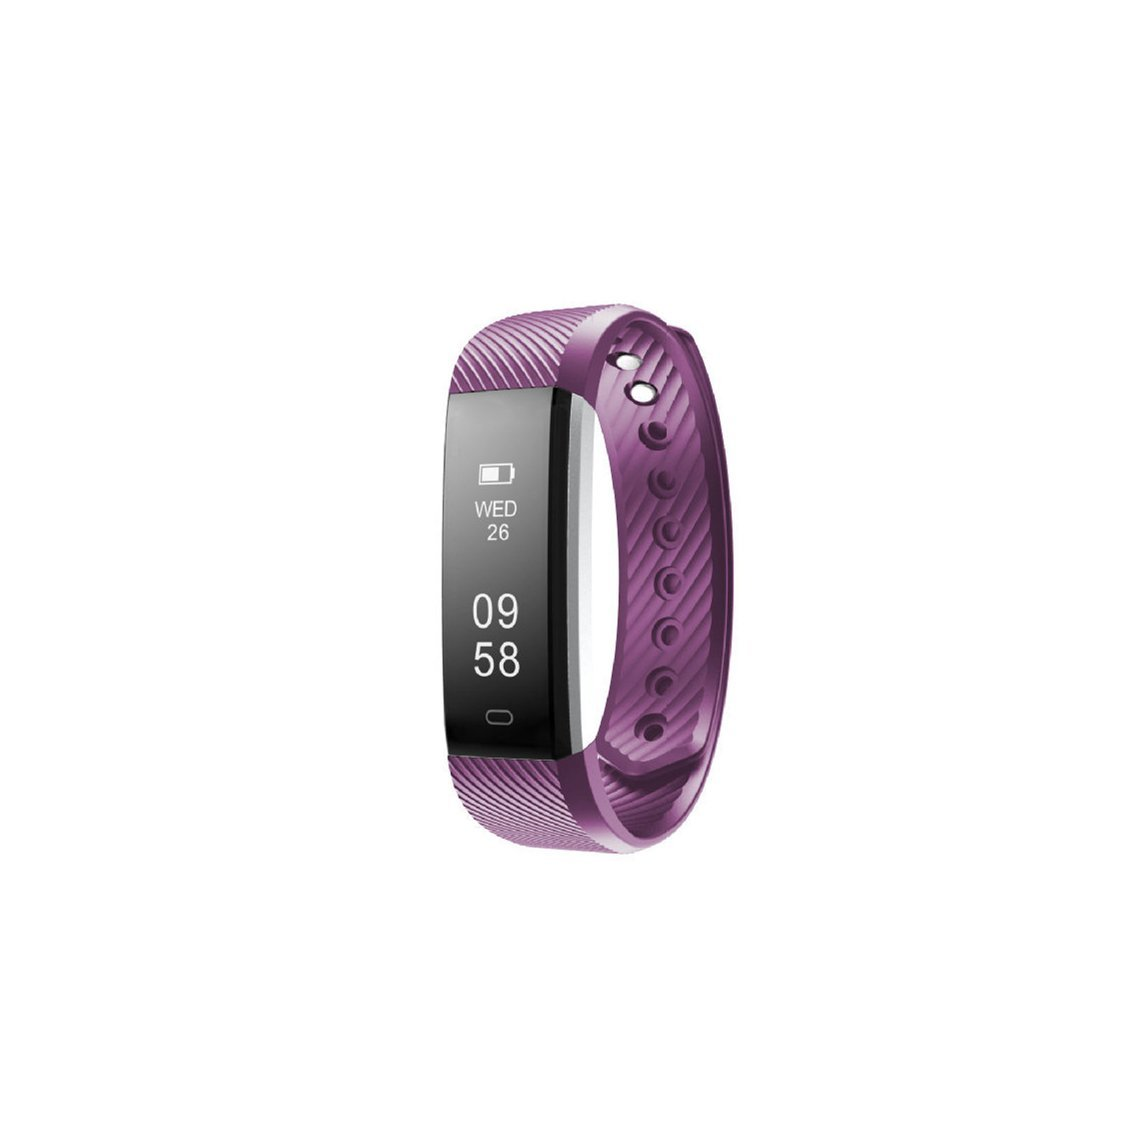 Fitness Tracker Watch Calories Pedestrips Mileage Tracks Blood Pressure Heart Rate Real-time Monitoring Touch Screen Ultra-light Skin-Friendly Material IP67 Waterproof Bracelet (purple)